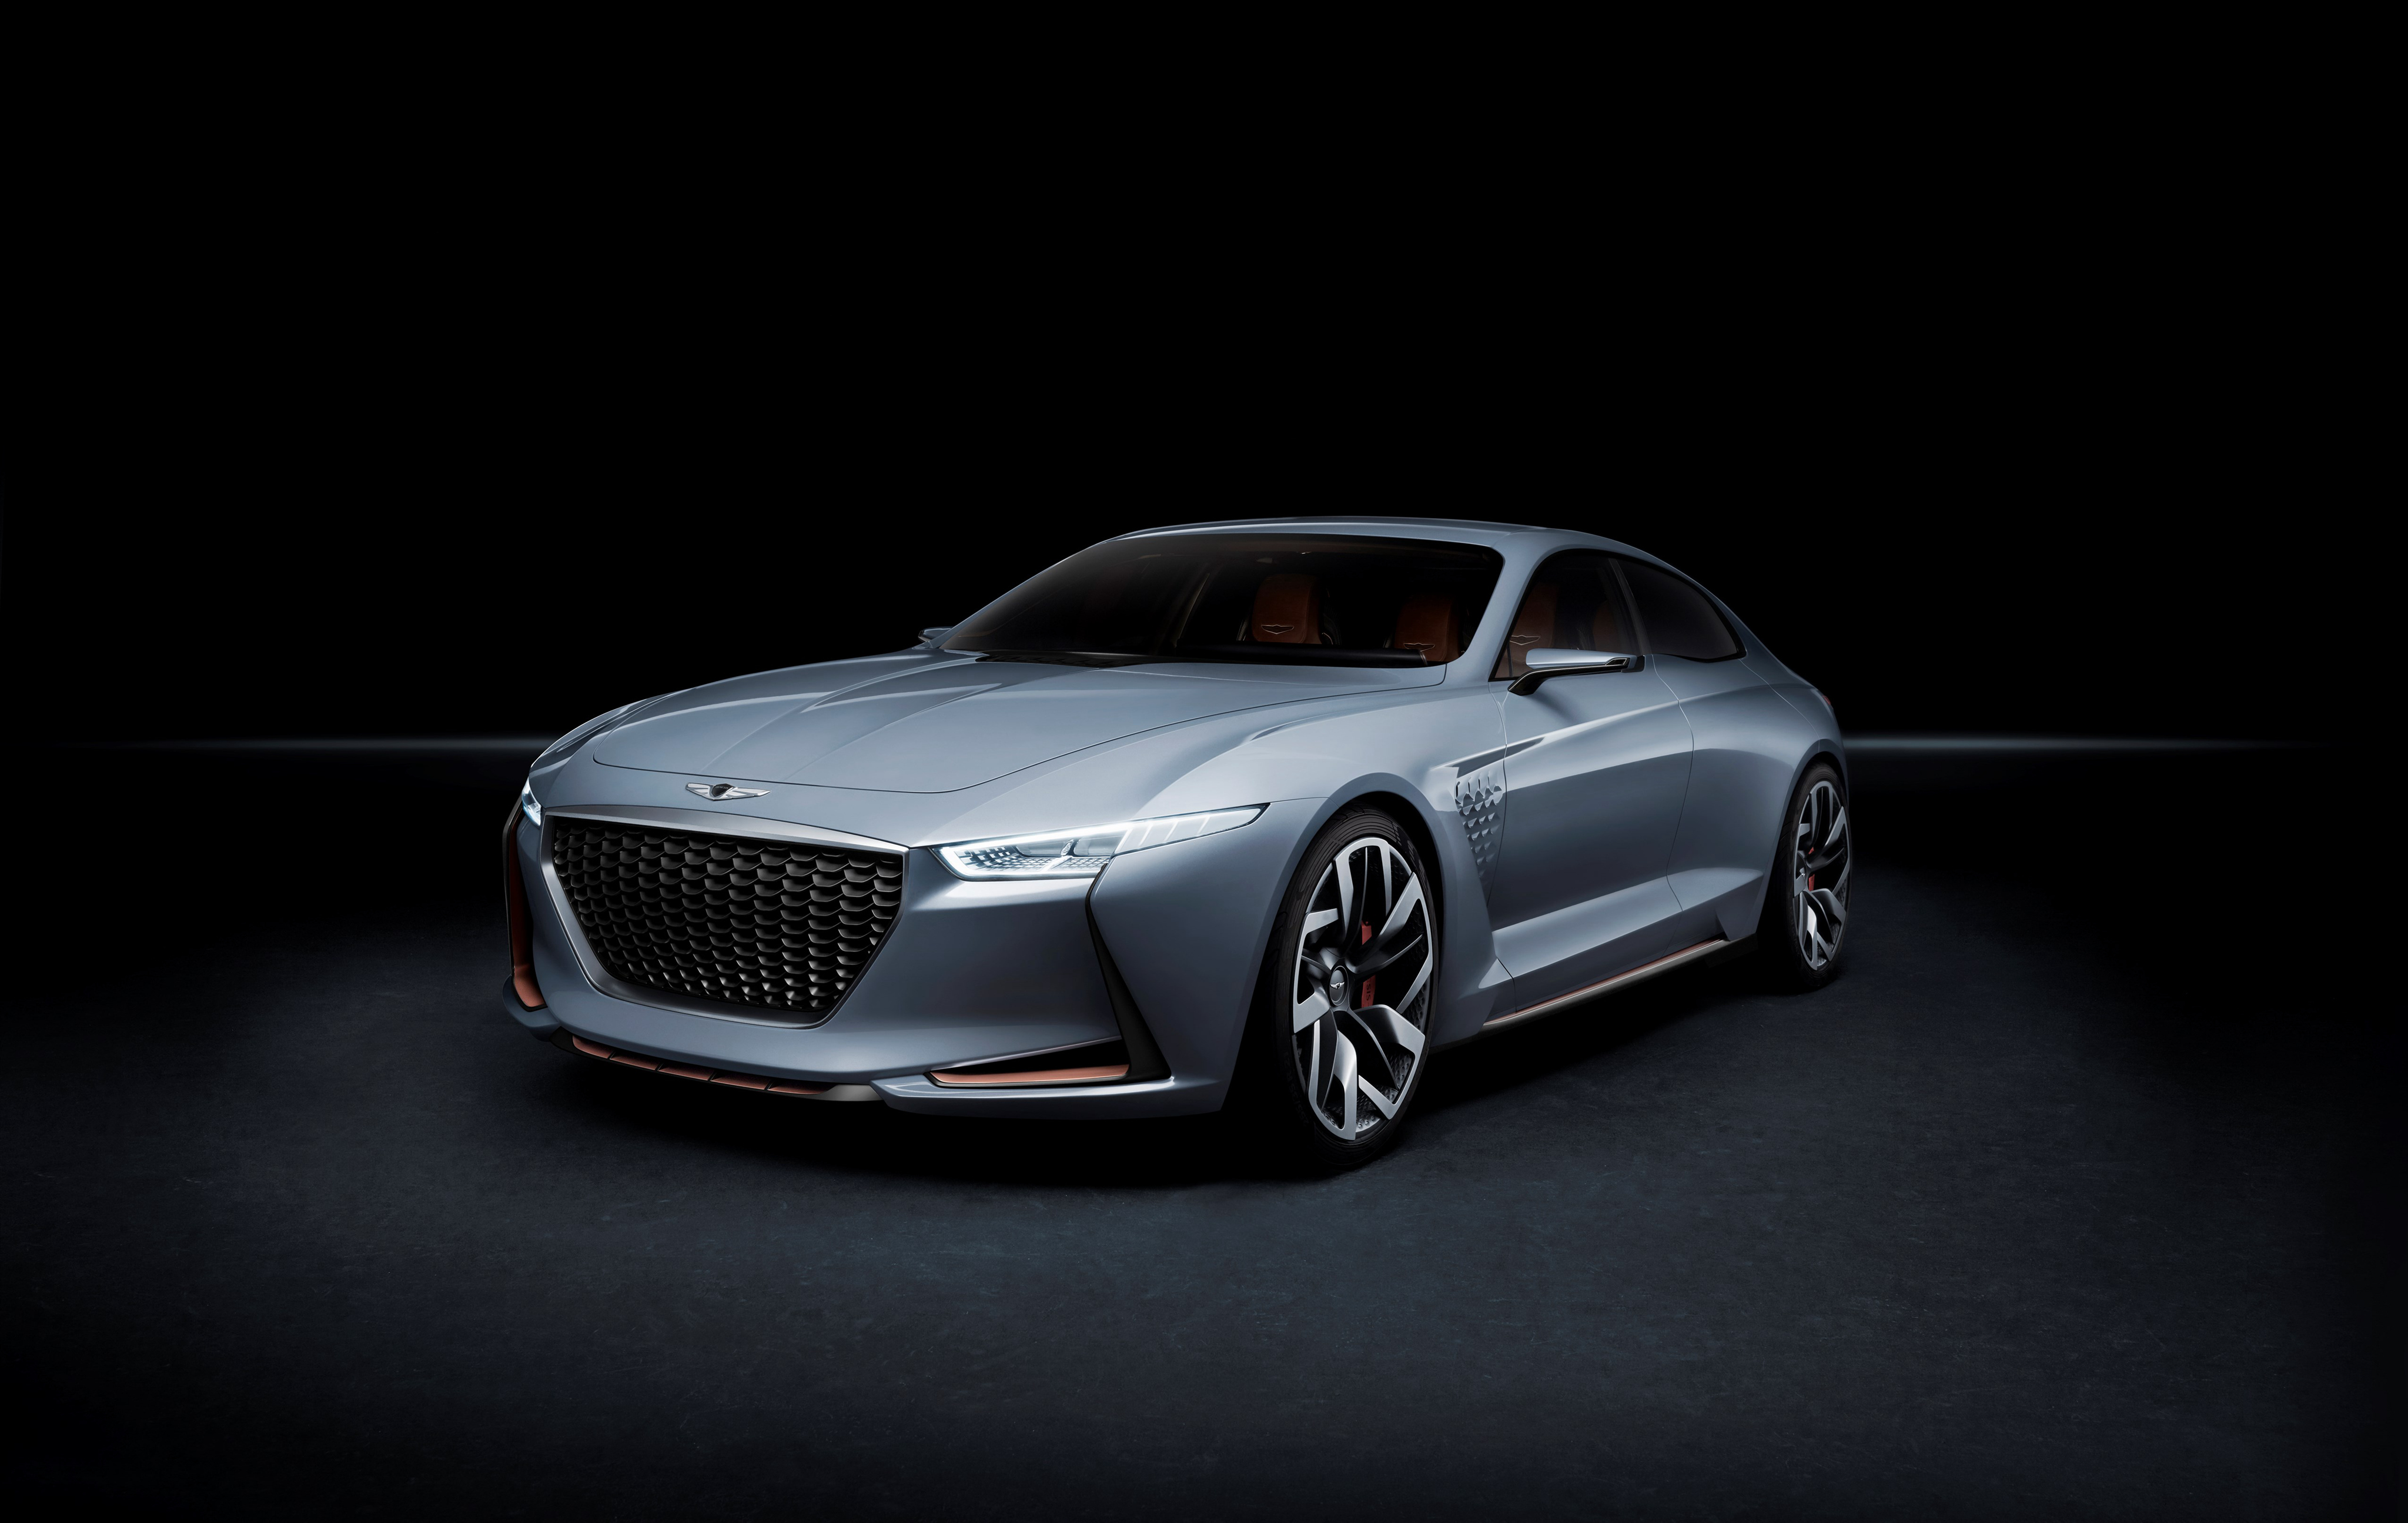 87475 download wallpaper Hyundai, Cars, Concept, Side View, Genesis screensavers and pictures for free